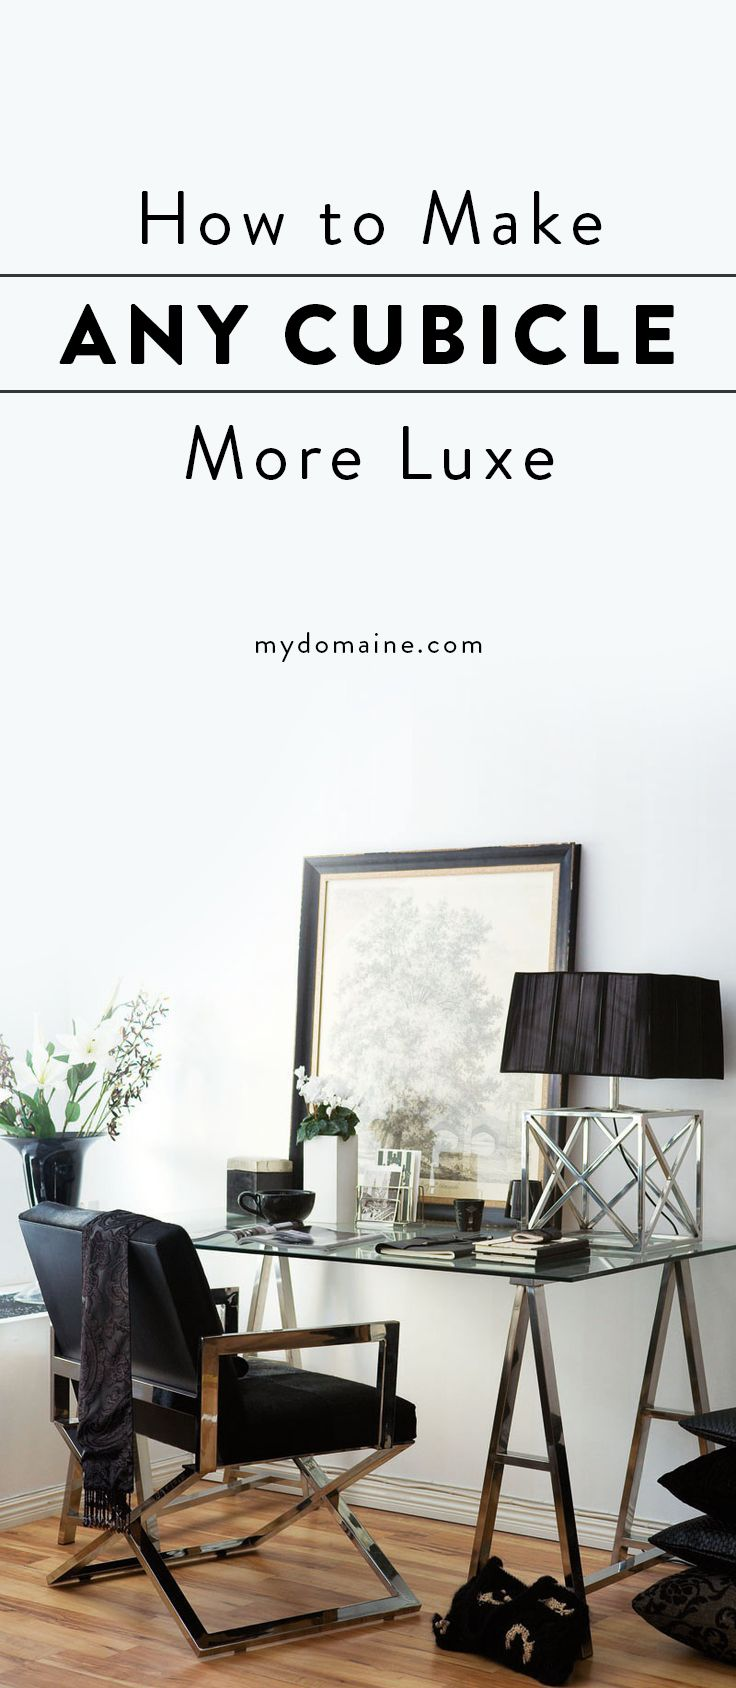 best office images on pinterest desks work spaces and office